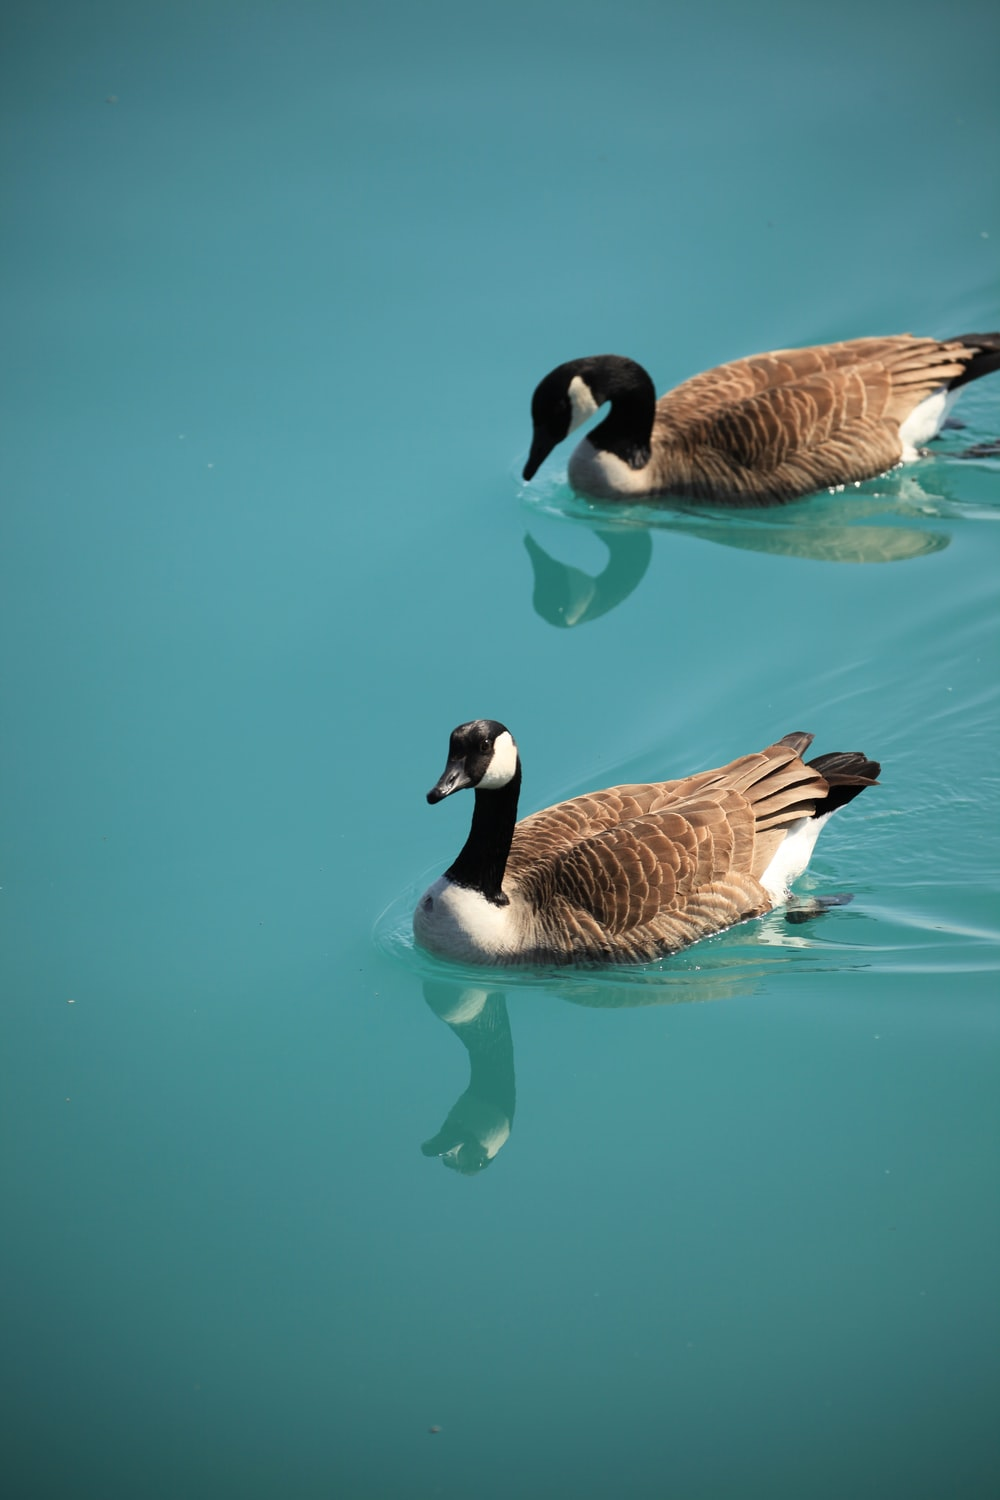 two brown ducks swimming on body of water during daytime